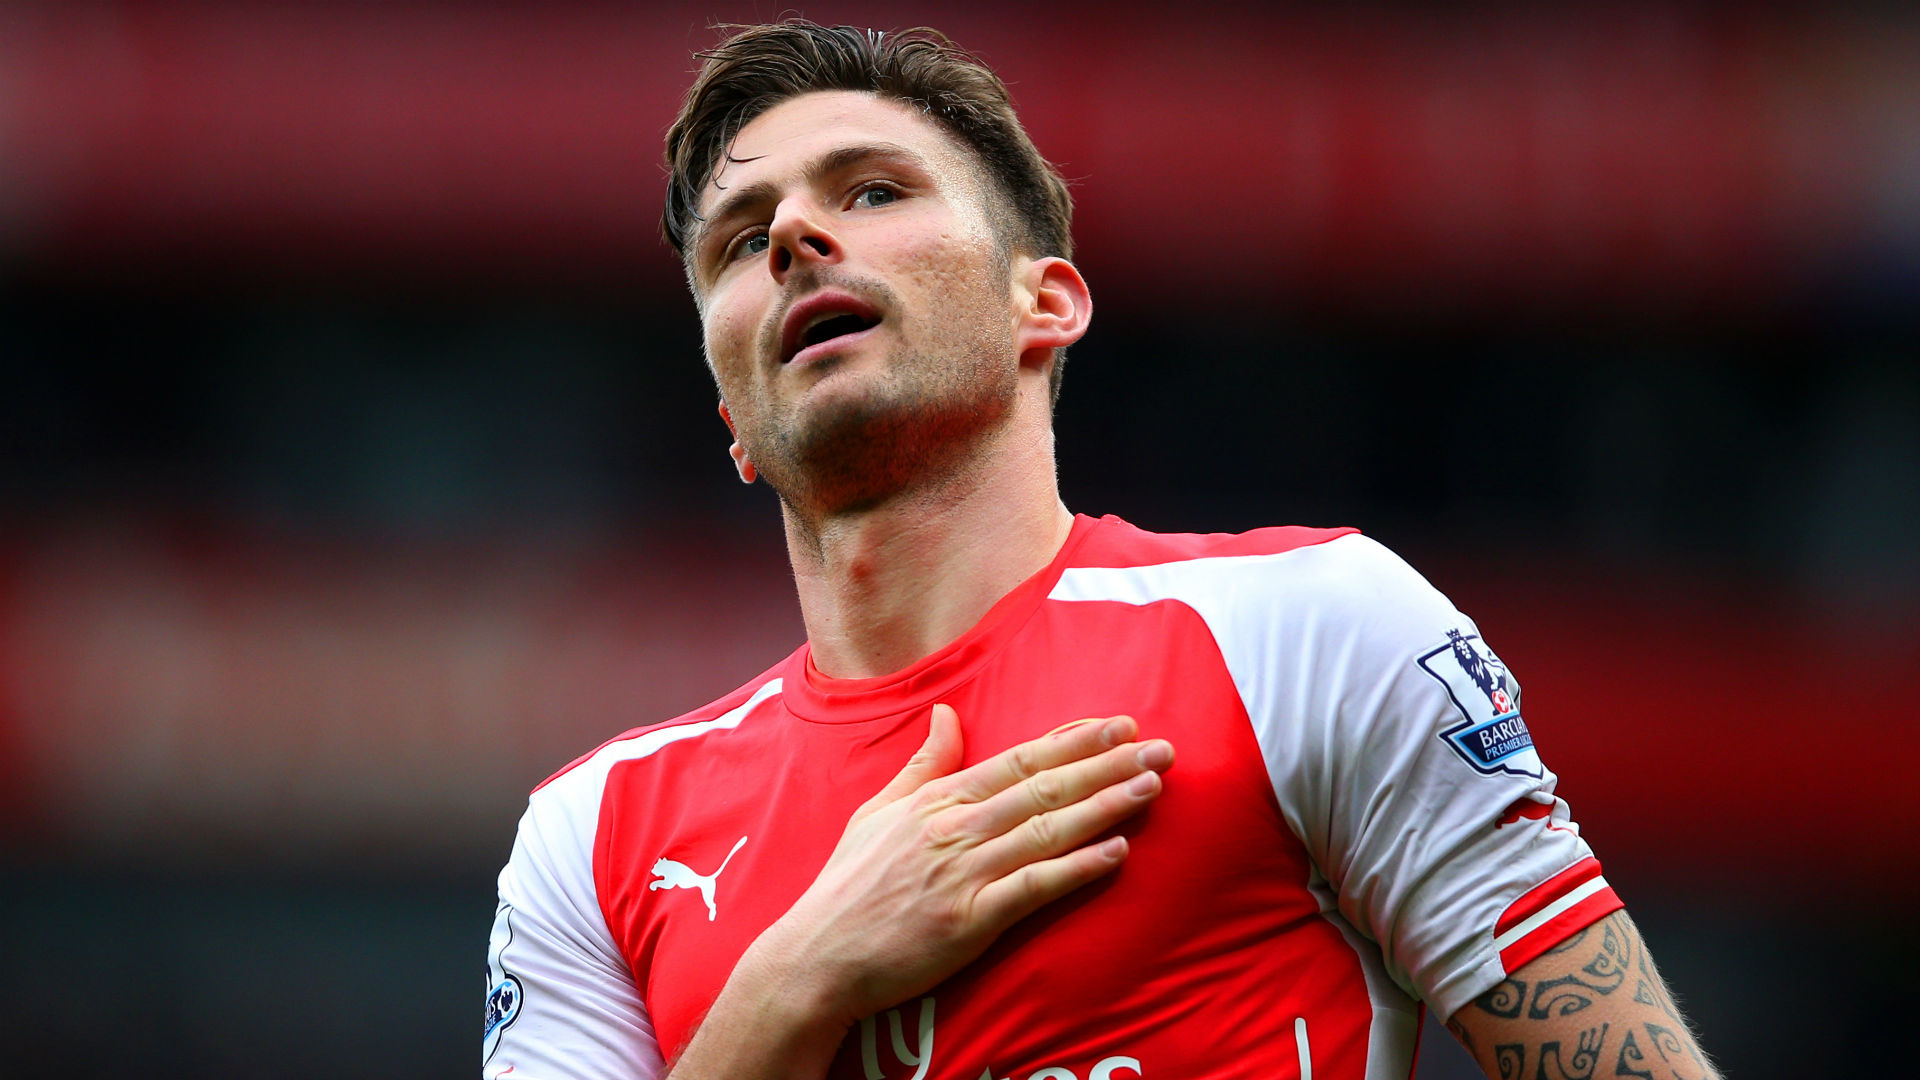 Henry is wrong, Giroud can win Arsenal titles - Coquelin